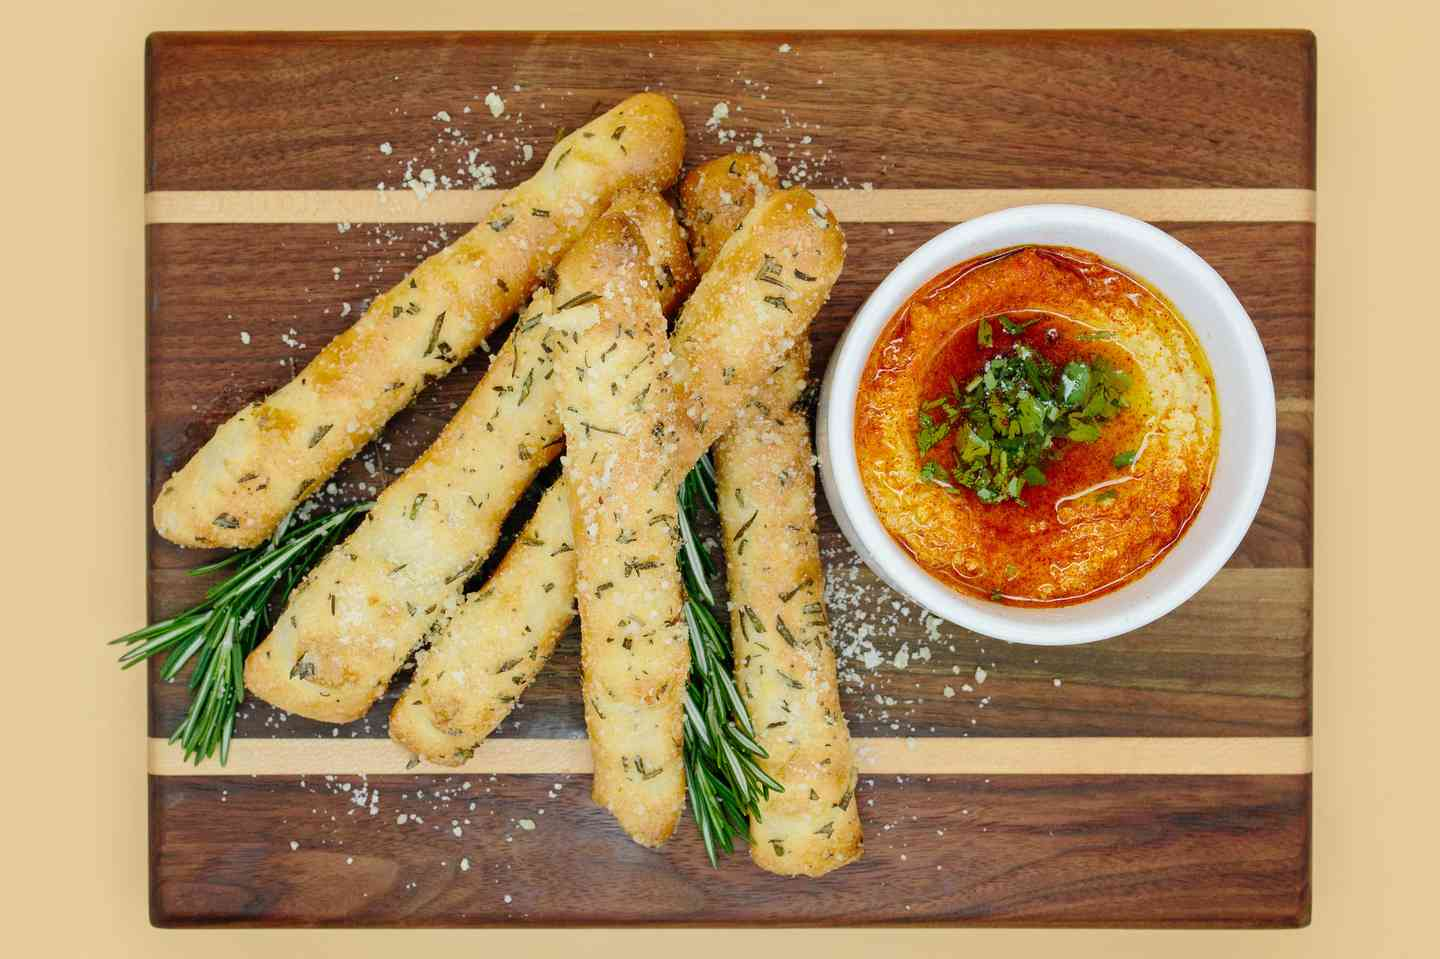 Rosemary Garlic Breadsticks and Hummus